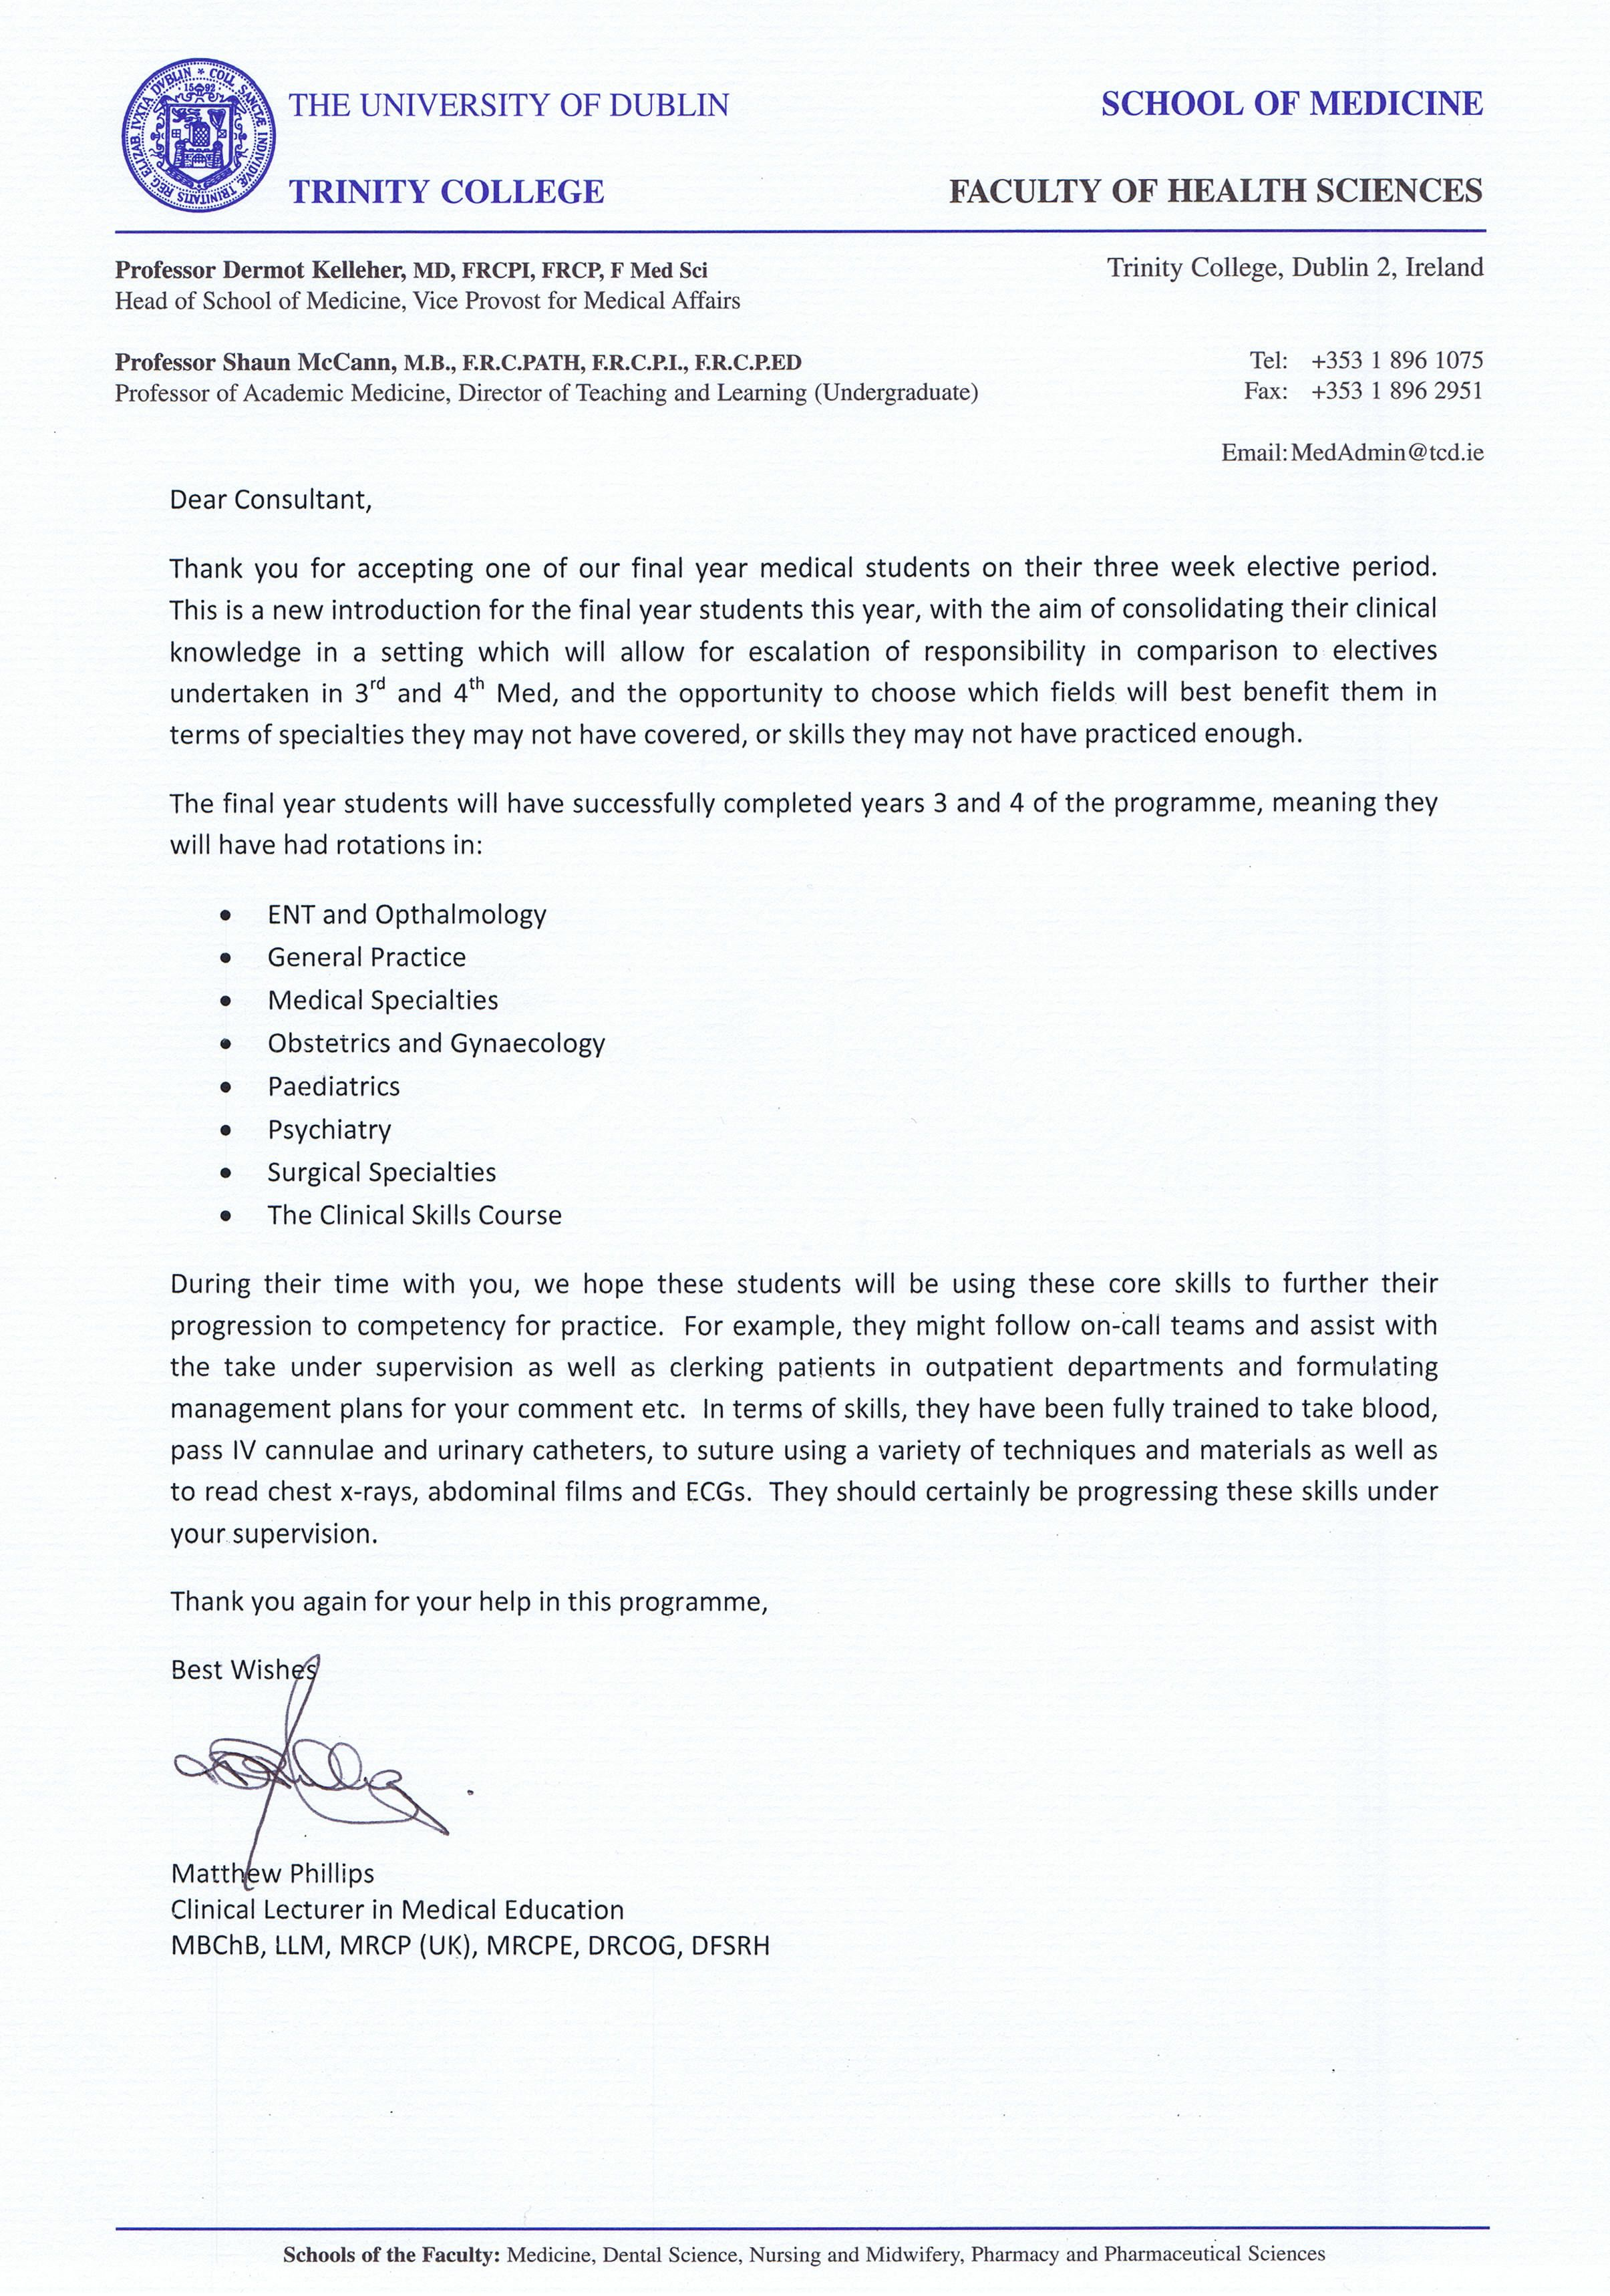 Email Cover Letter Template Format For Sending Cover Letter Email Through Example  Employment .